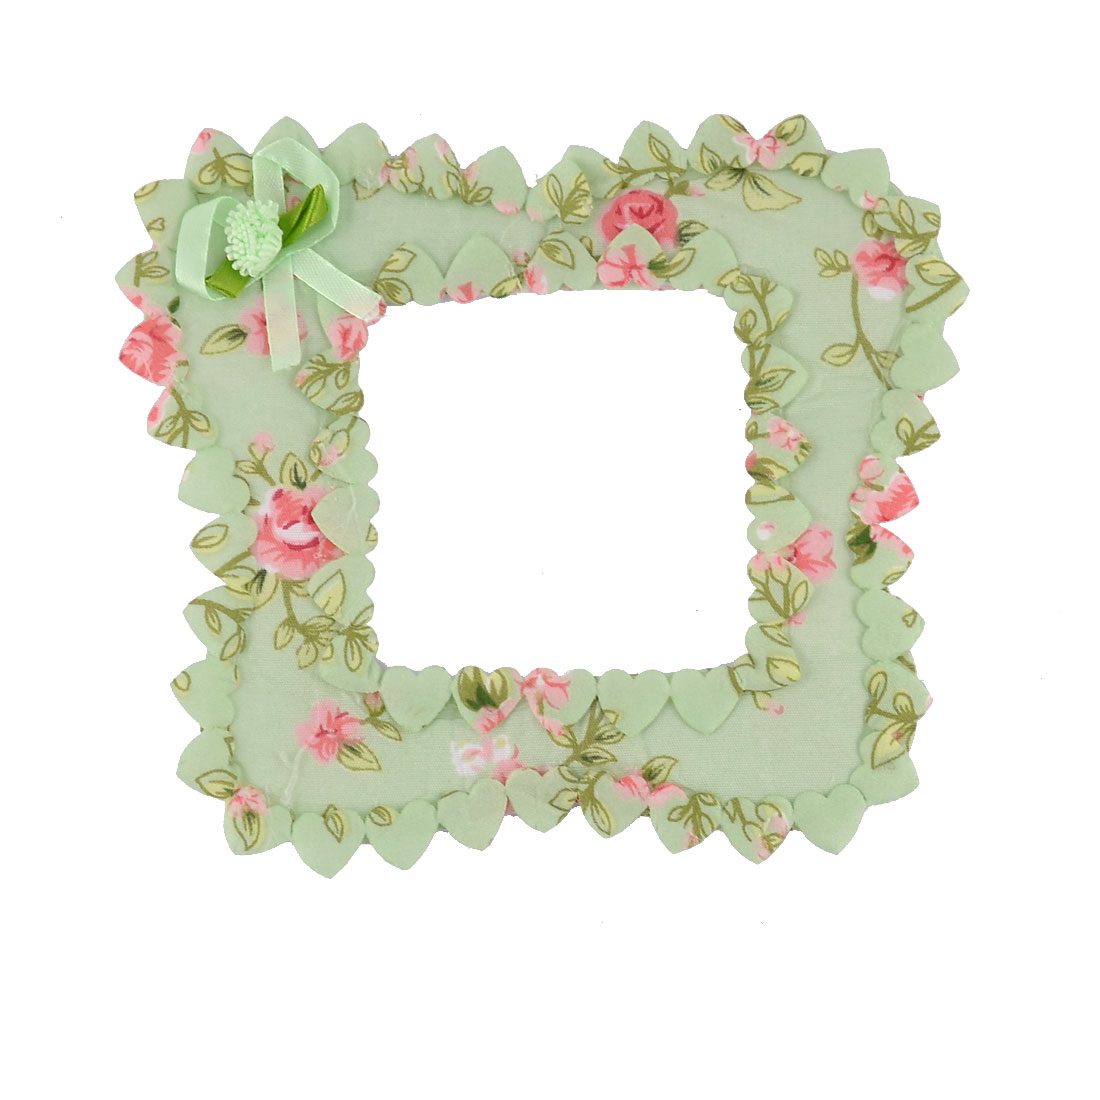 Cotton Flower Pattern Rustic Style Socket Covers Wall Switch Sticker Green Pink